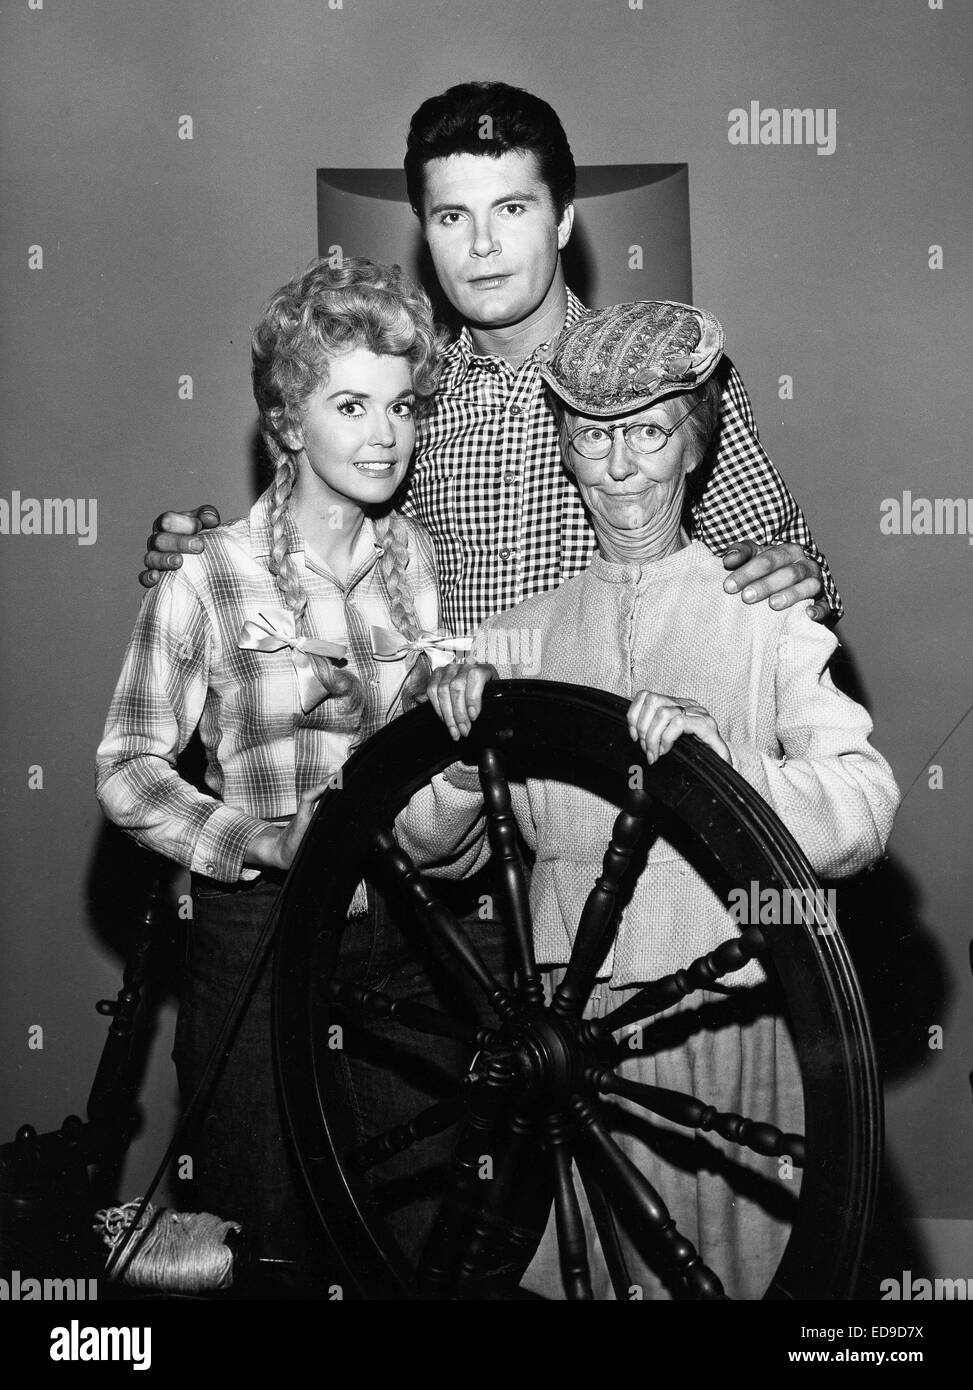 File. 2nd Jan, 2015. Donna Douglas, who played hillbilly bombshell Elly May Clampett on the baby-boomer-beloved 1960s sitcom The Beverly Hillbillies, has died in her Louisiana home. She was 81. PICTURED: July 20, 2011 - The Beverly Hillbillies cast DONNA DOUGLAS, left, IRENE RYAN, BUDDY MAX BAER Jr. © Globe Photos/ZUMAPRESS.com/Alamy Live News Stock Photo